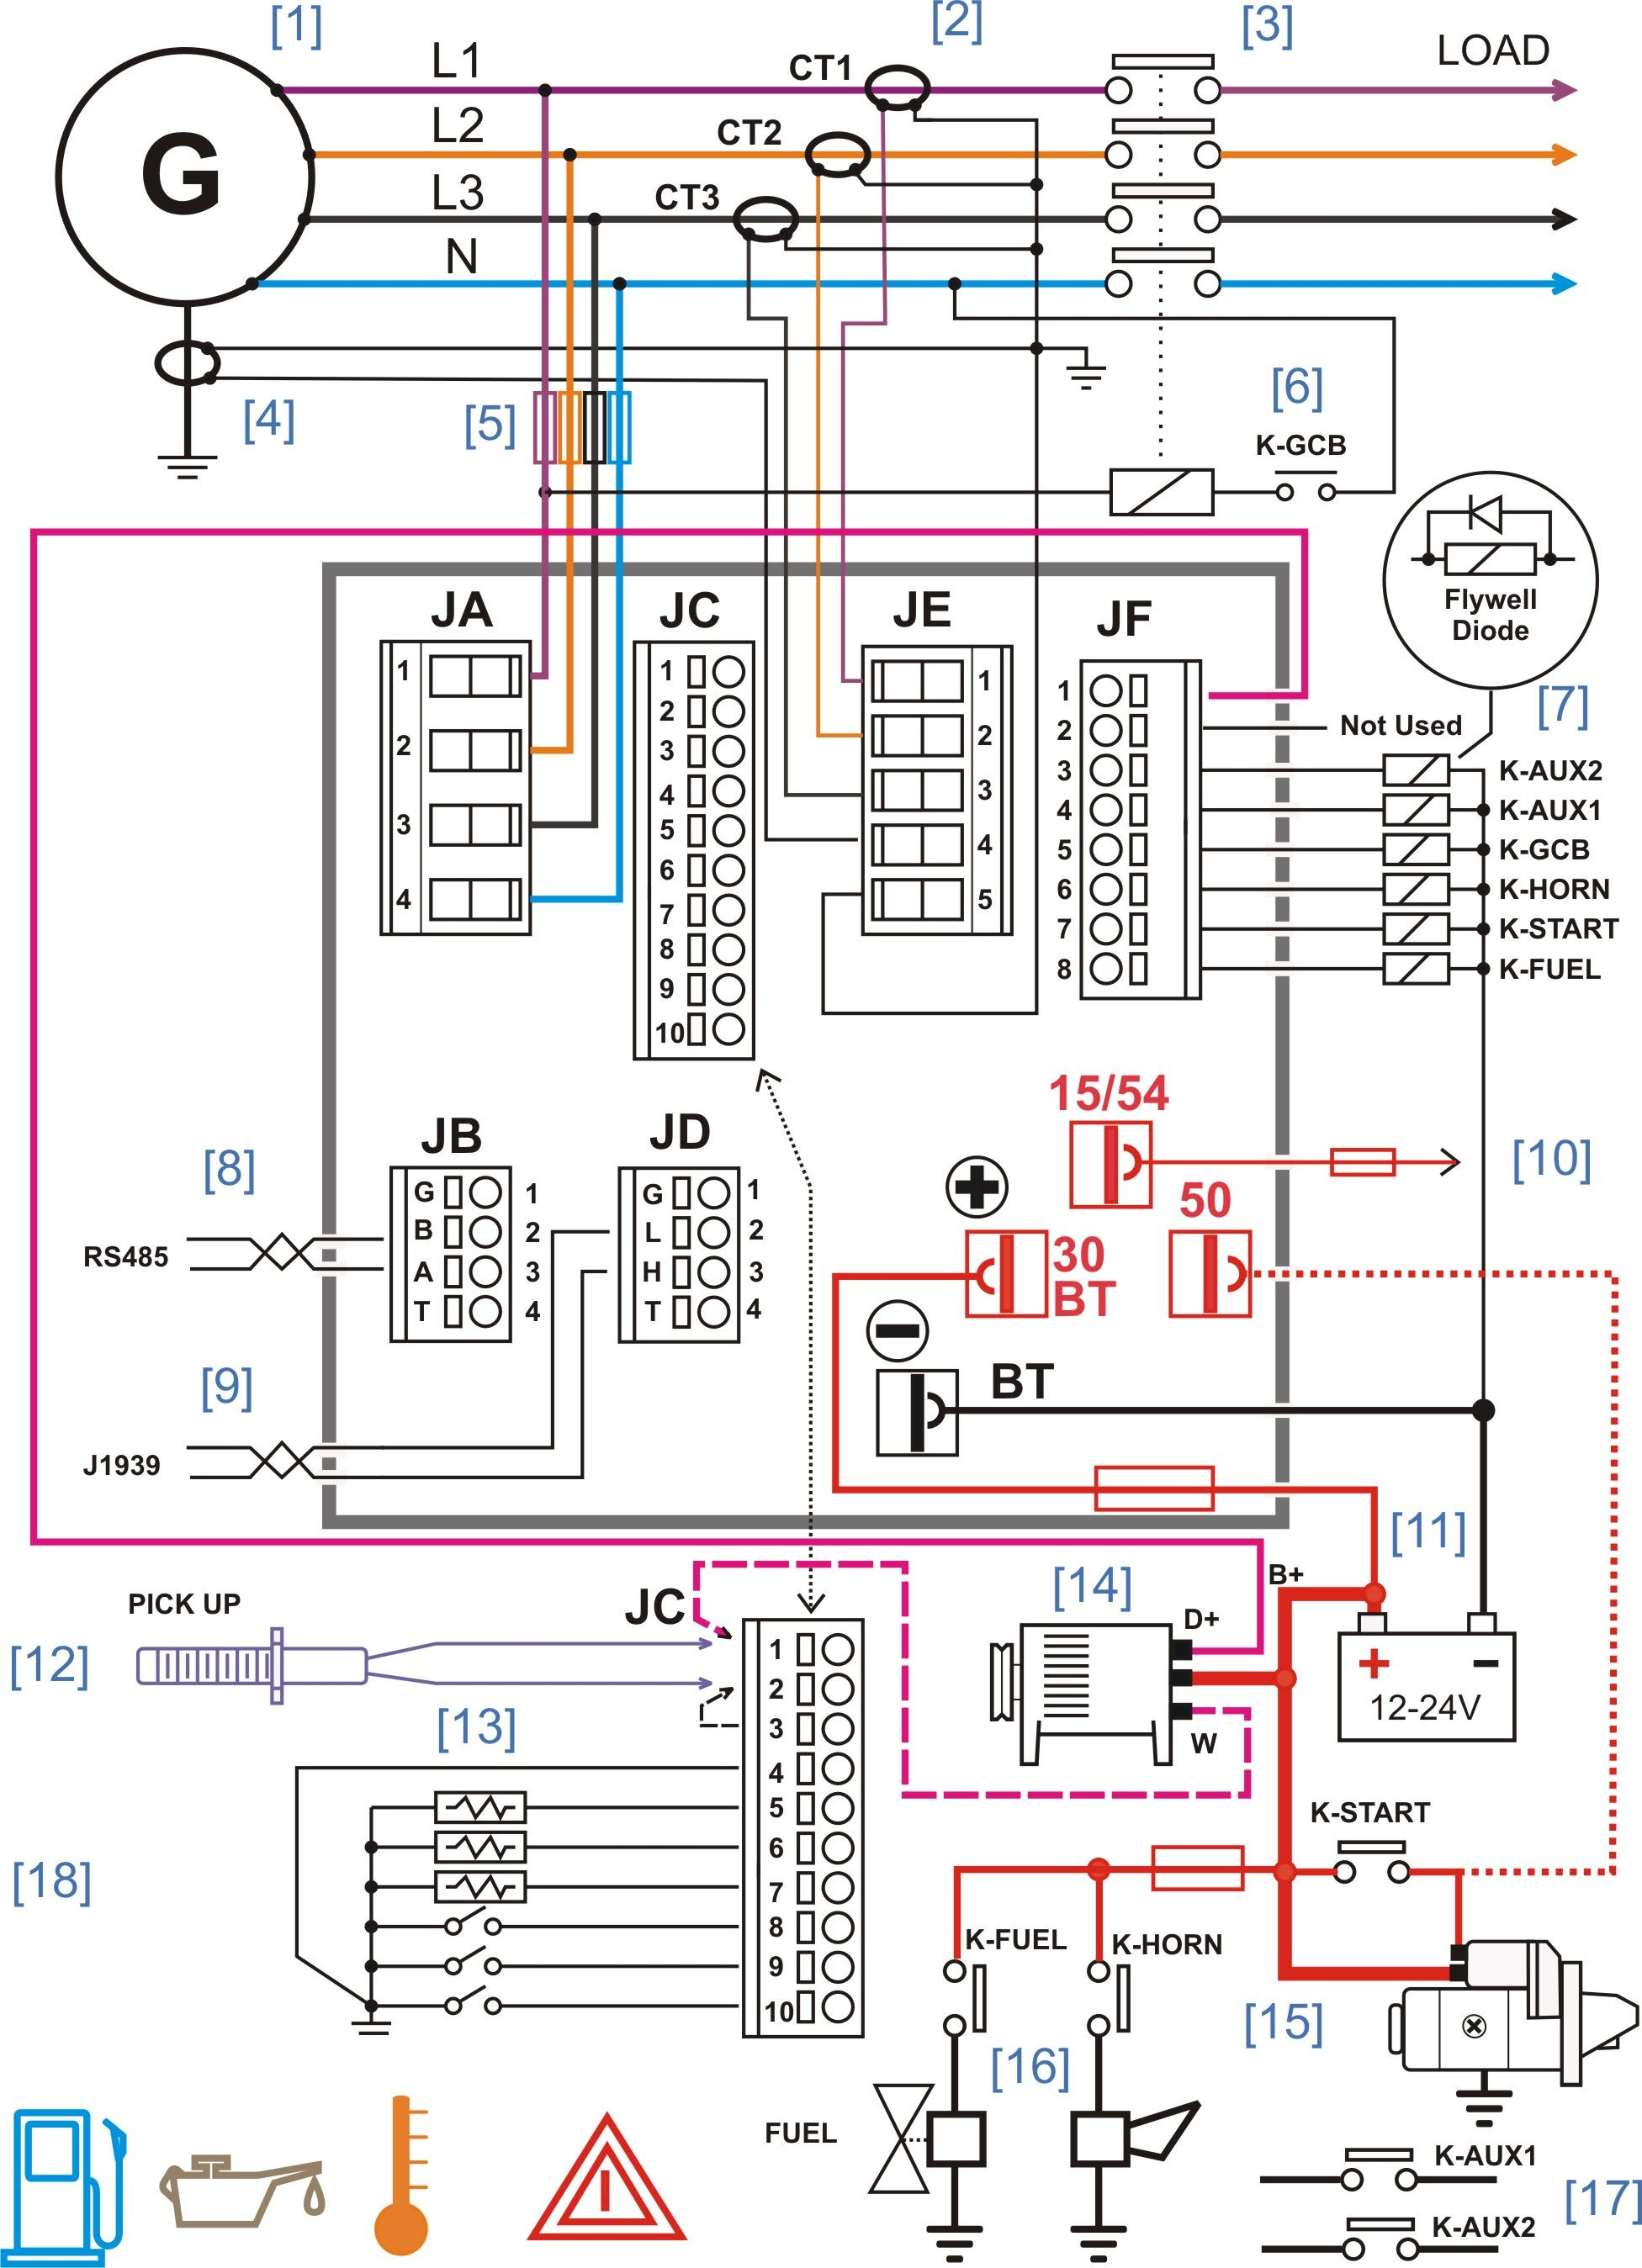 Lighting Control Panel Wiring Diagram from i.pinimg.com